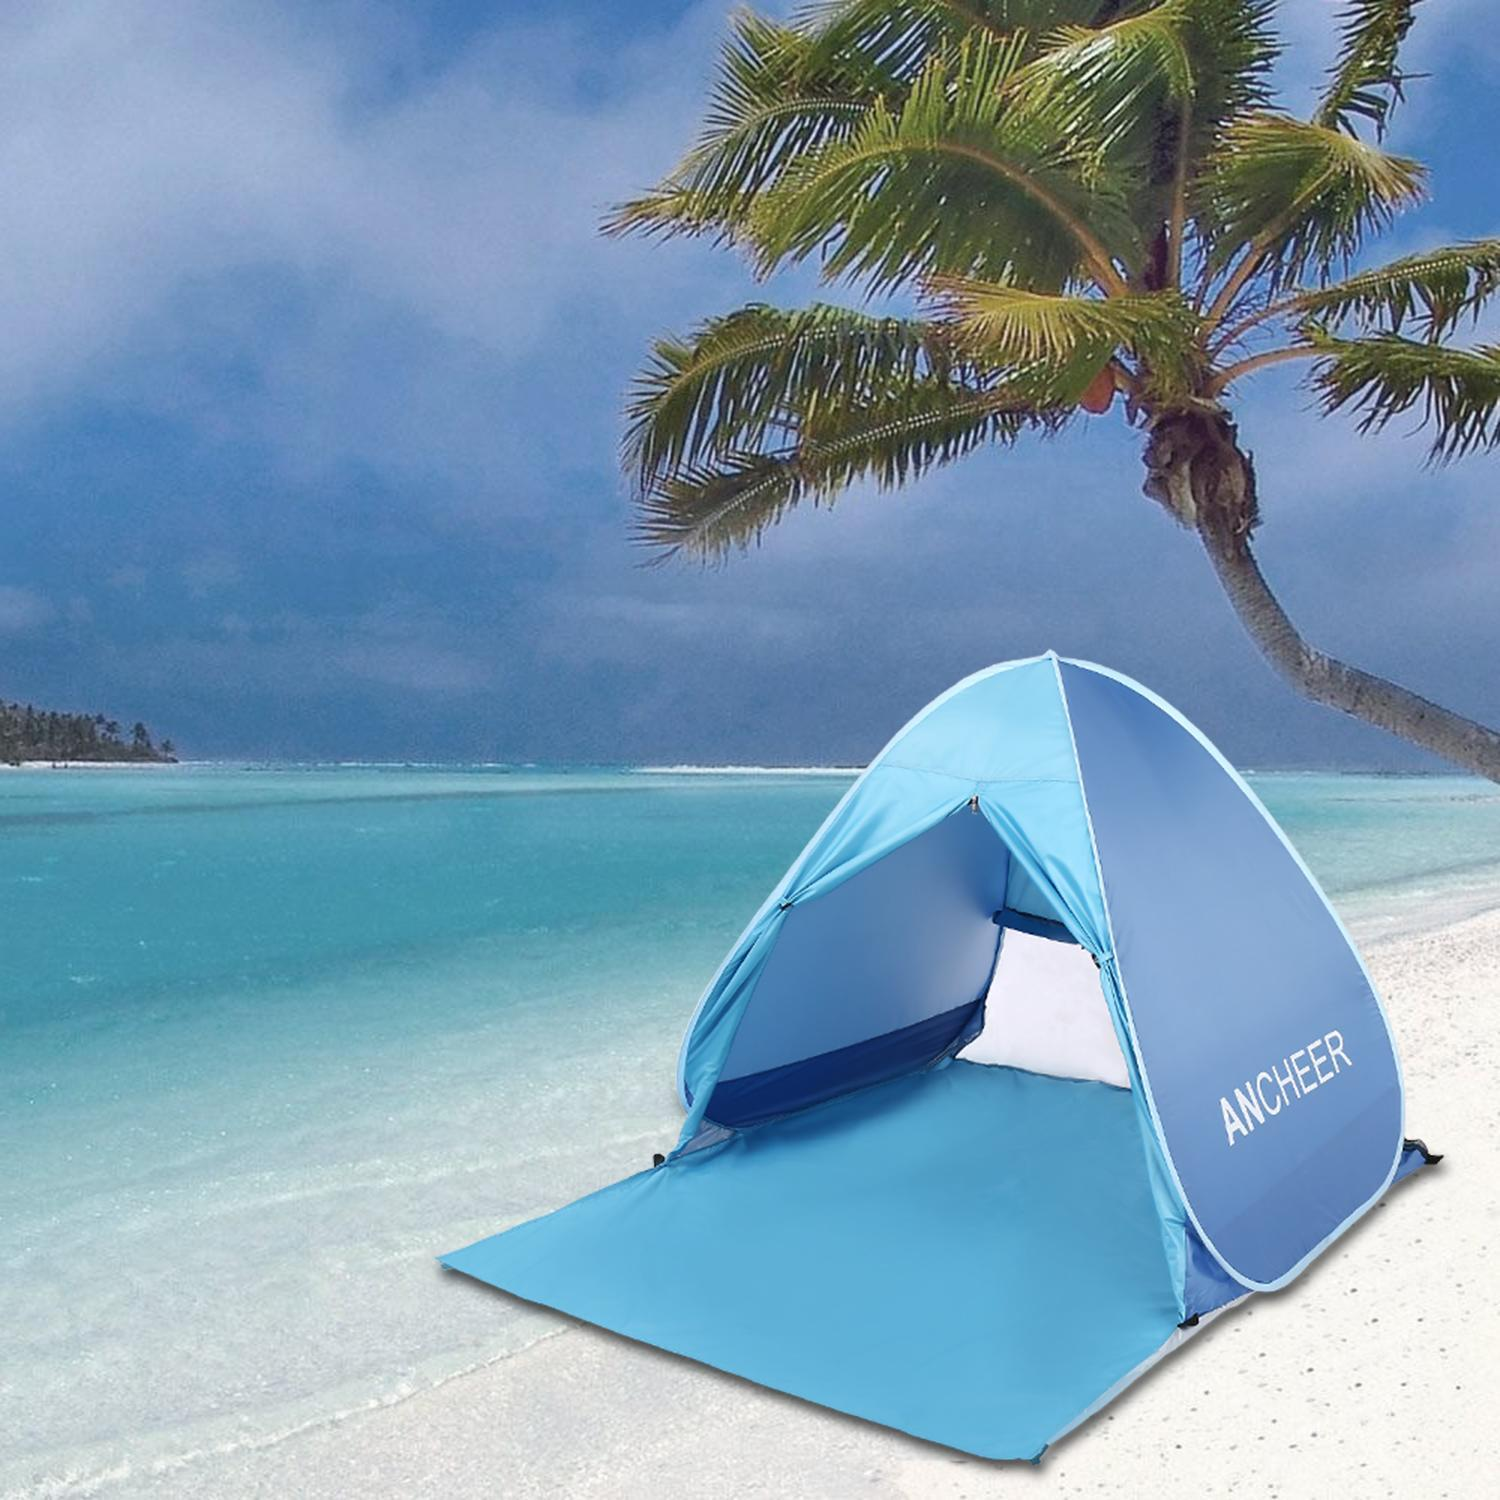 Outdoors Portable Beach Tent Sun Shelter Automatic Pop Up Tent Instant Quick Beach Tent Sun Shelter AMZSE by